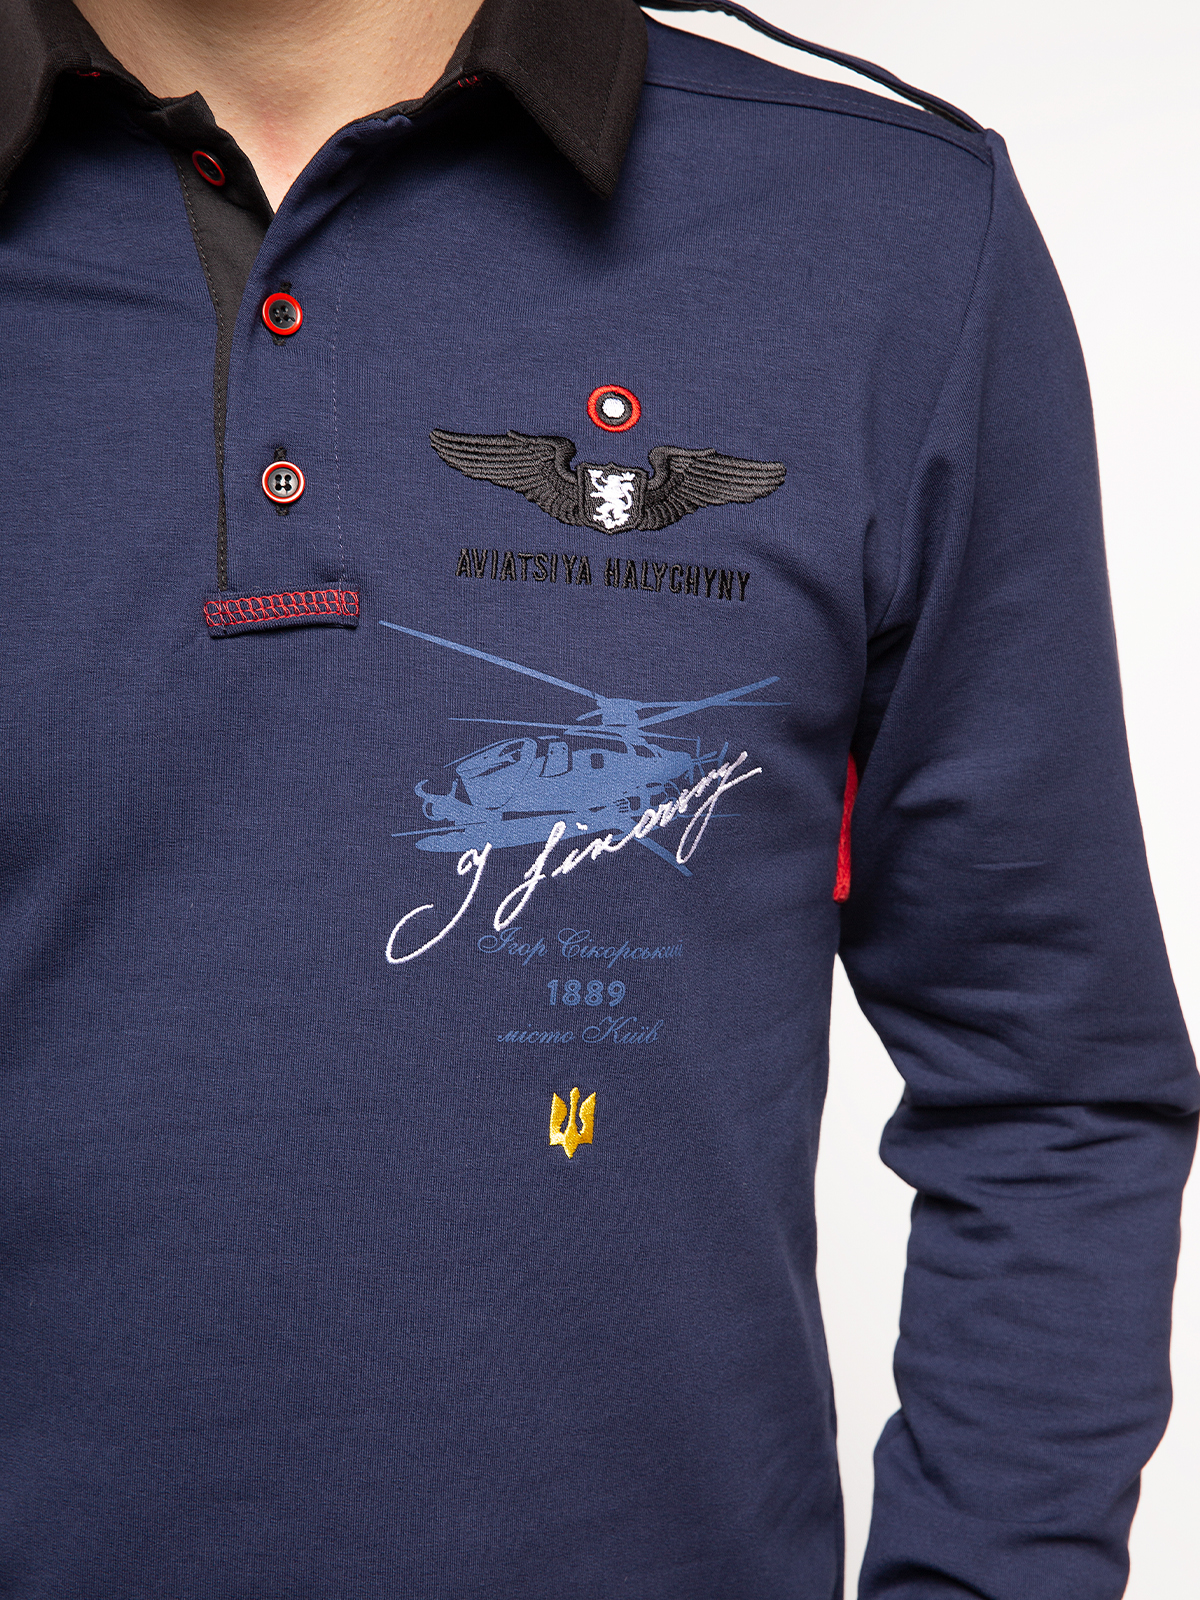 Men's Polo Long Sikorsky. Color navy blue.  Size worn by the model: М.